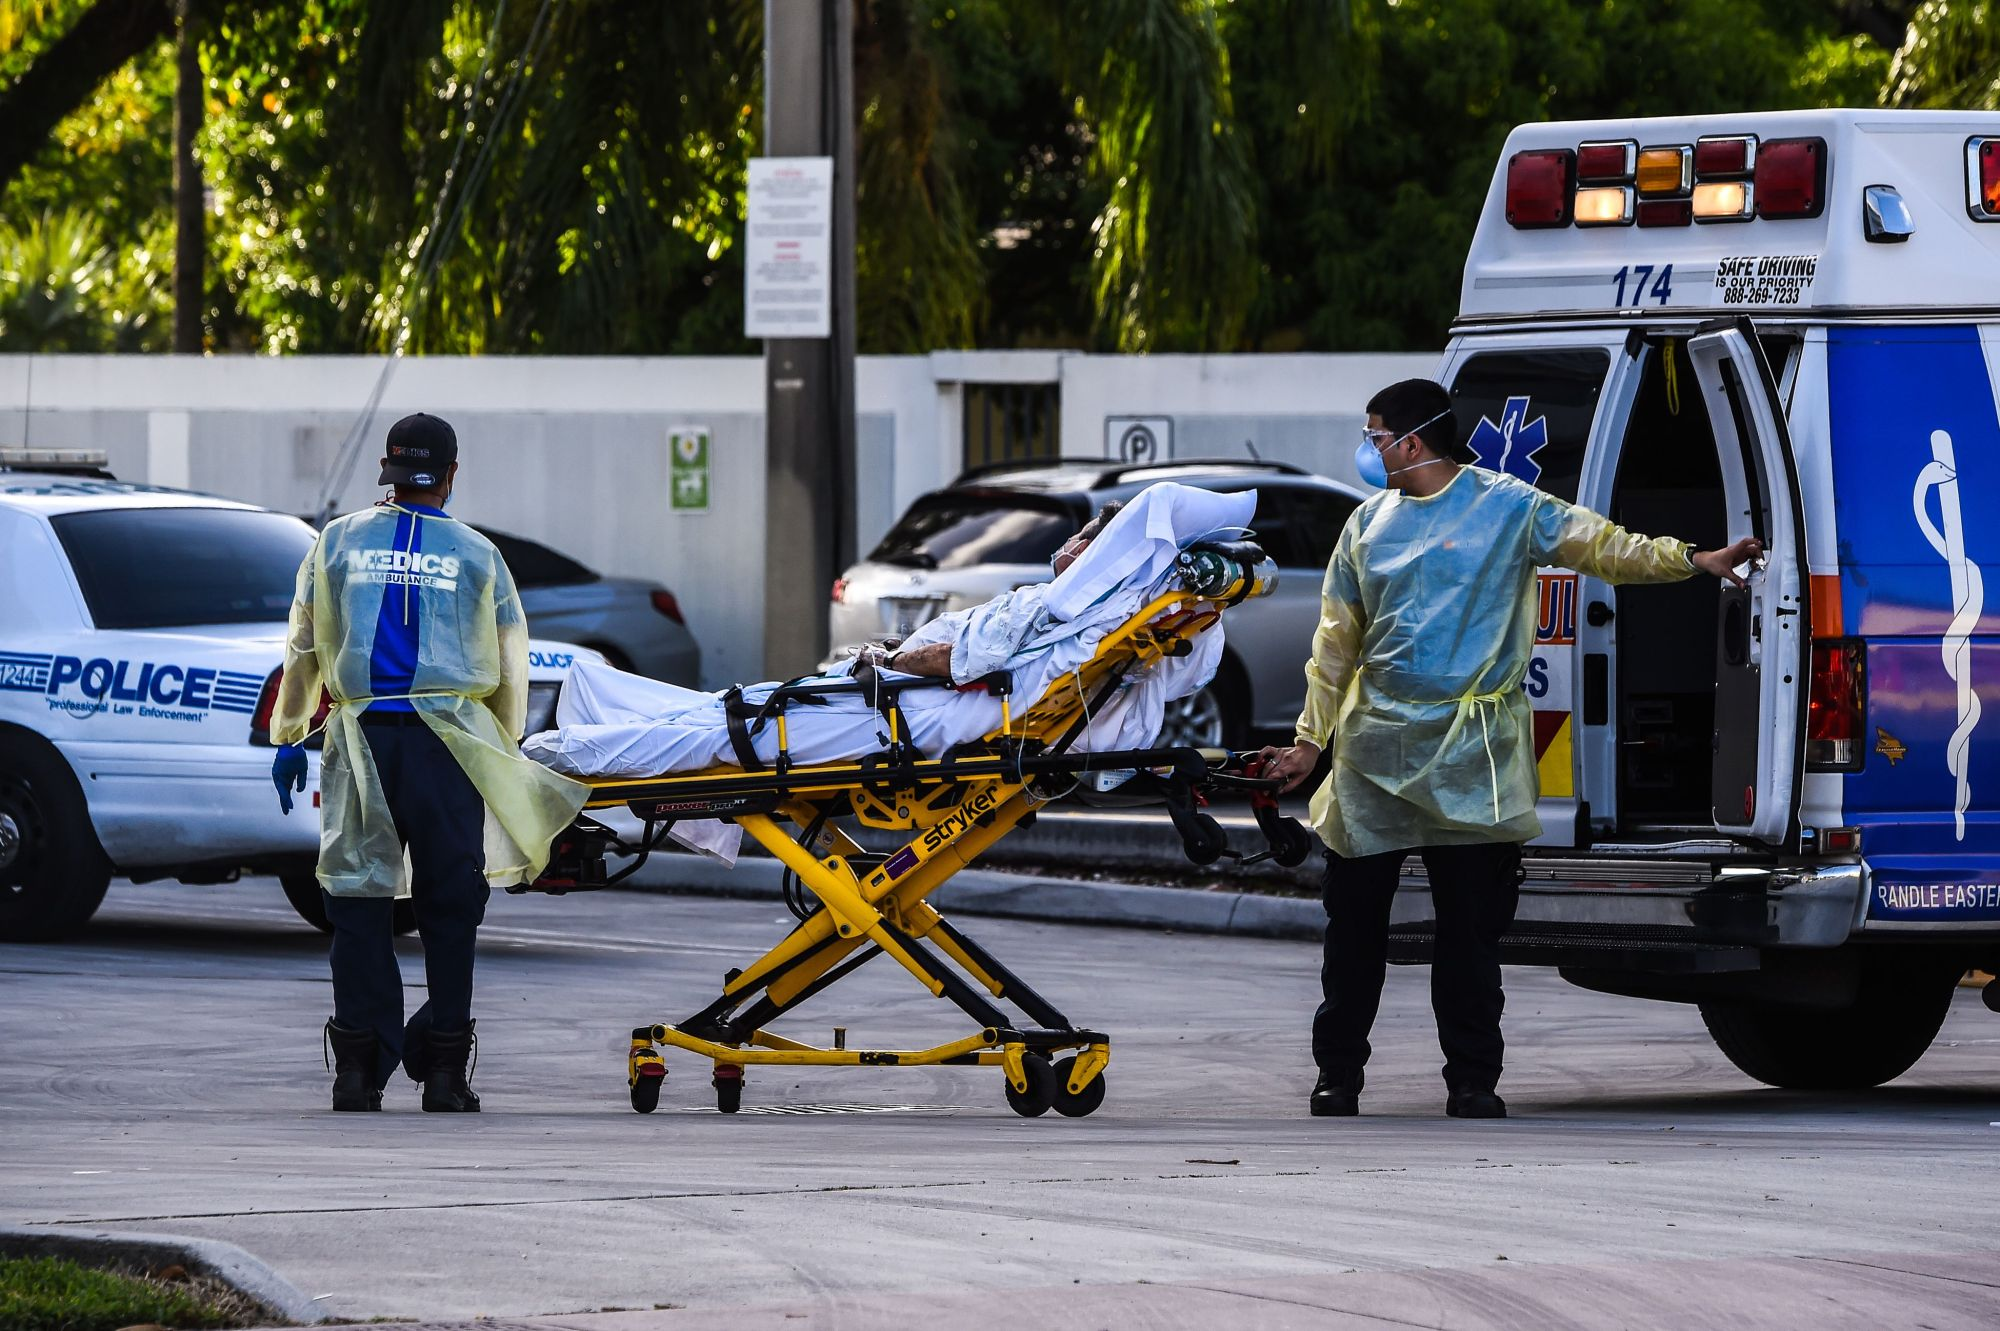 Medics transfer a patient on a stretcher from an ambulance outside of Emergency at Coral Gables Hospital where Coronavirus patients are treated in Coral Gables near Miami, on July 30, 2020. Florida has emerged as a major new epicenter of the U.S. battle against the disease, with confirmed cases recently surpassing New York and now second only to California. (CHANDAN KHANNA/AFP via Getty Images)